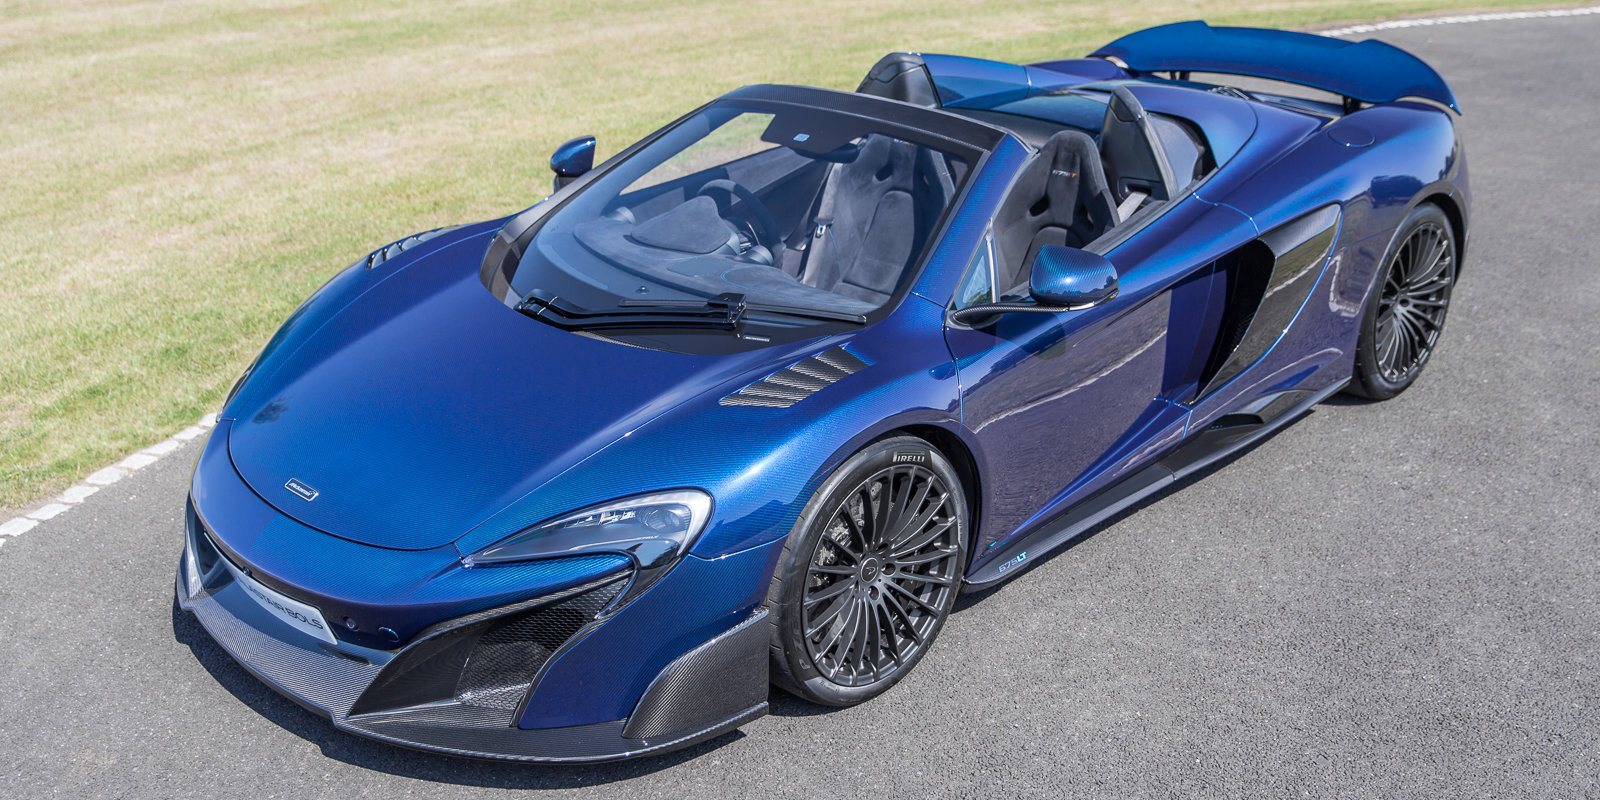 2012 McLaren 675LT Spider Carbon Series in Metallic blue clear For Sale (picture 1 of 6)